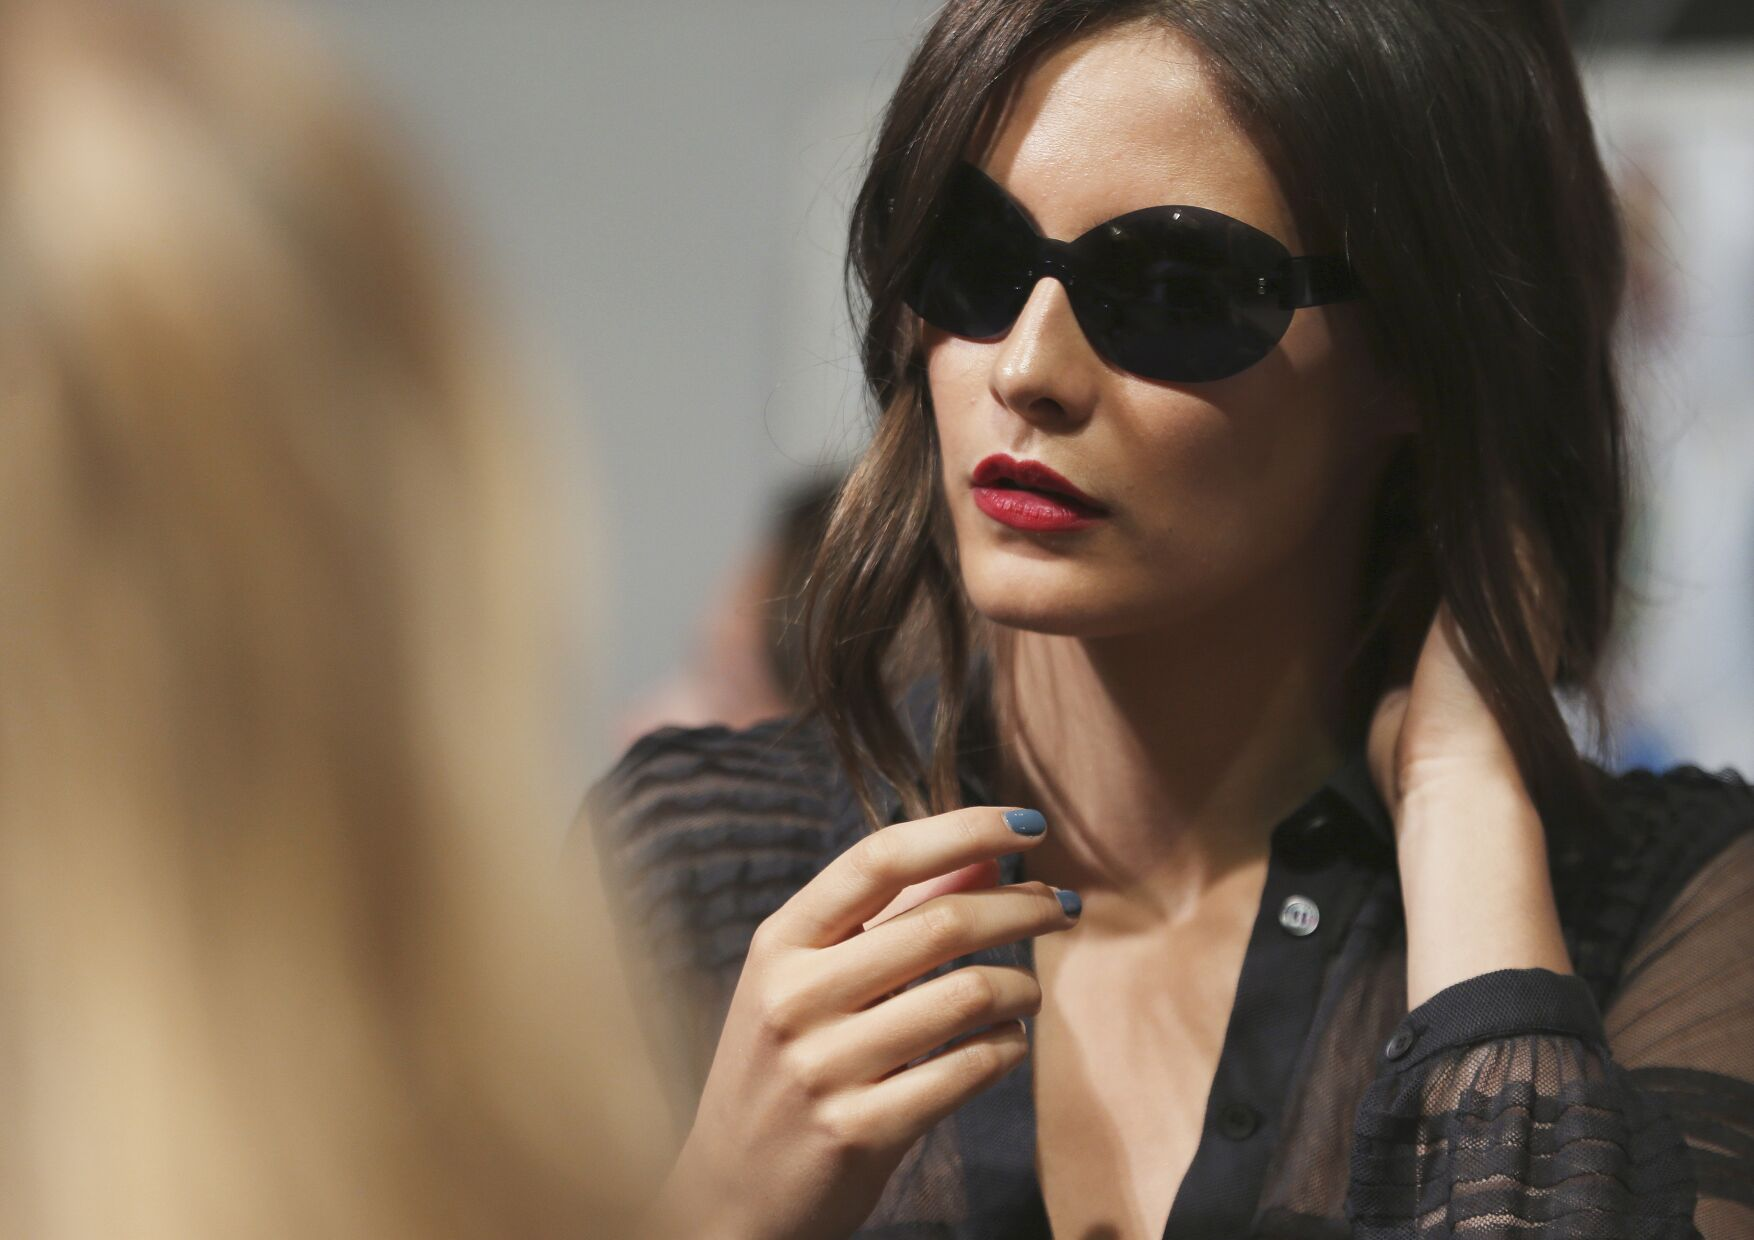 Model Backstage Burberry Prorsum Fashion Show